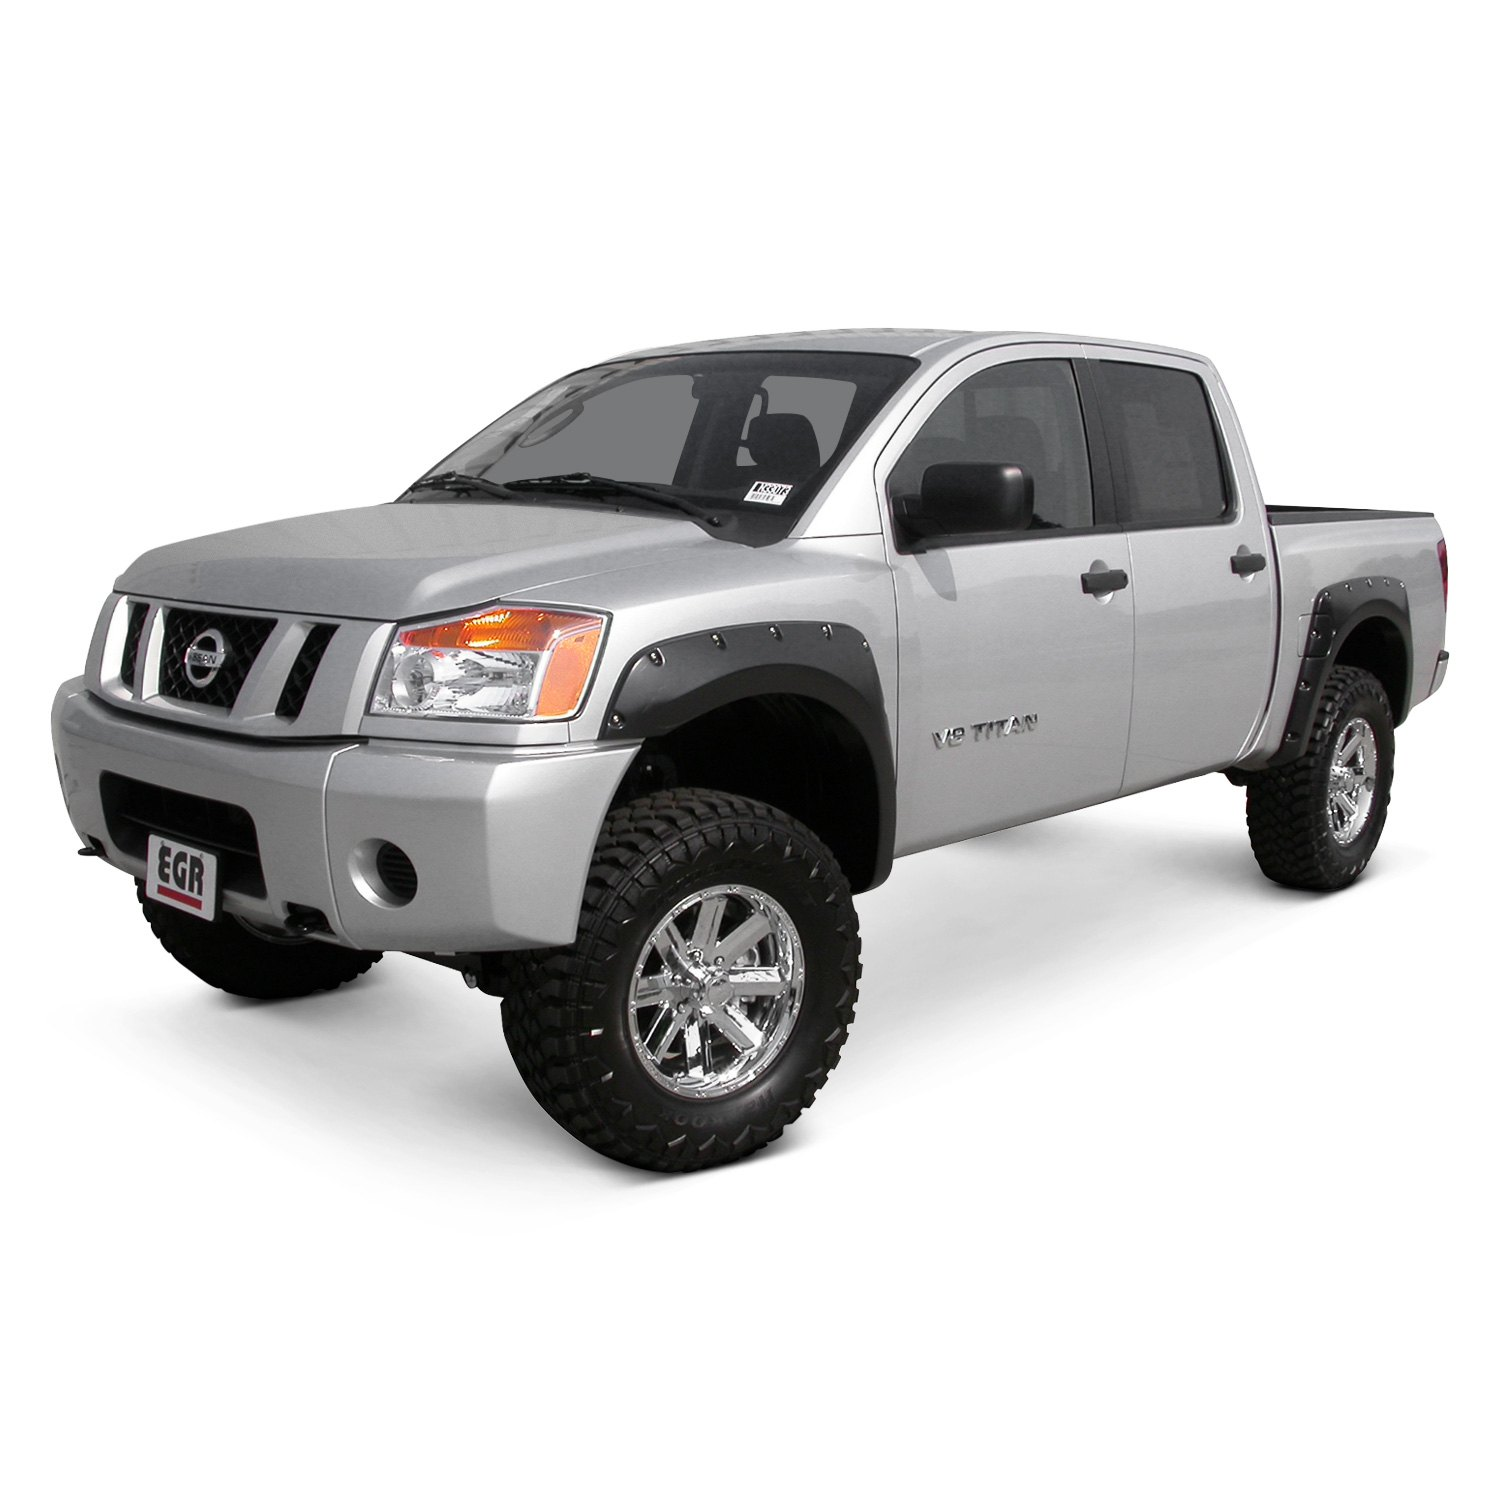 Egr 174 Nissan Titan 2004 2015 Bolt On Style Black Fender